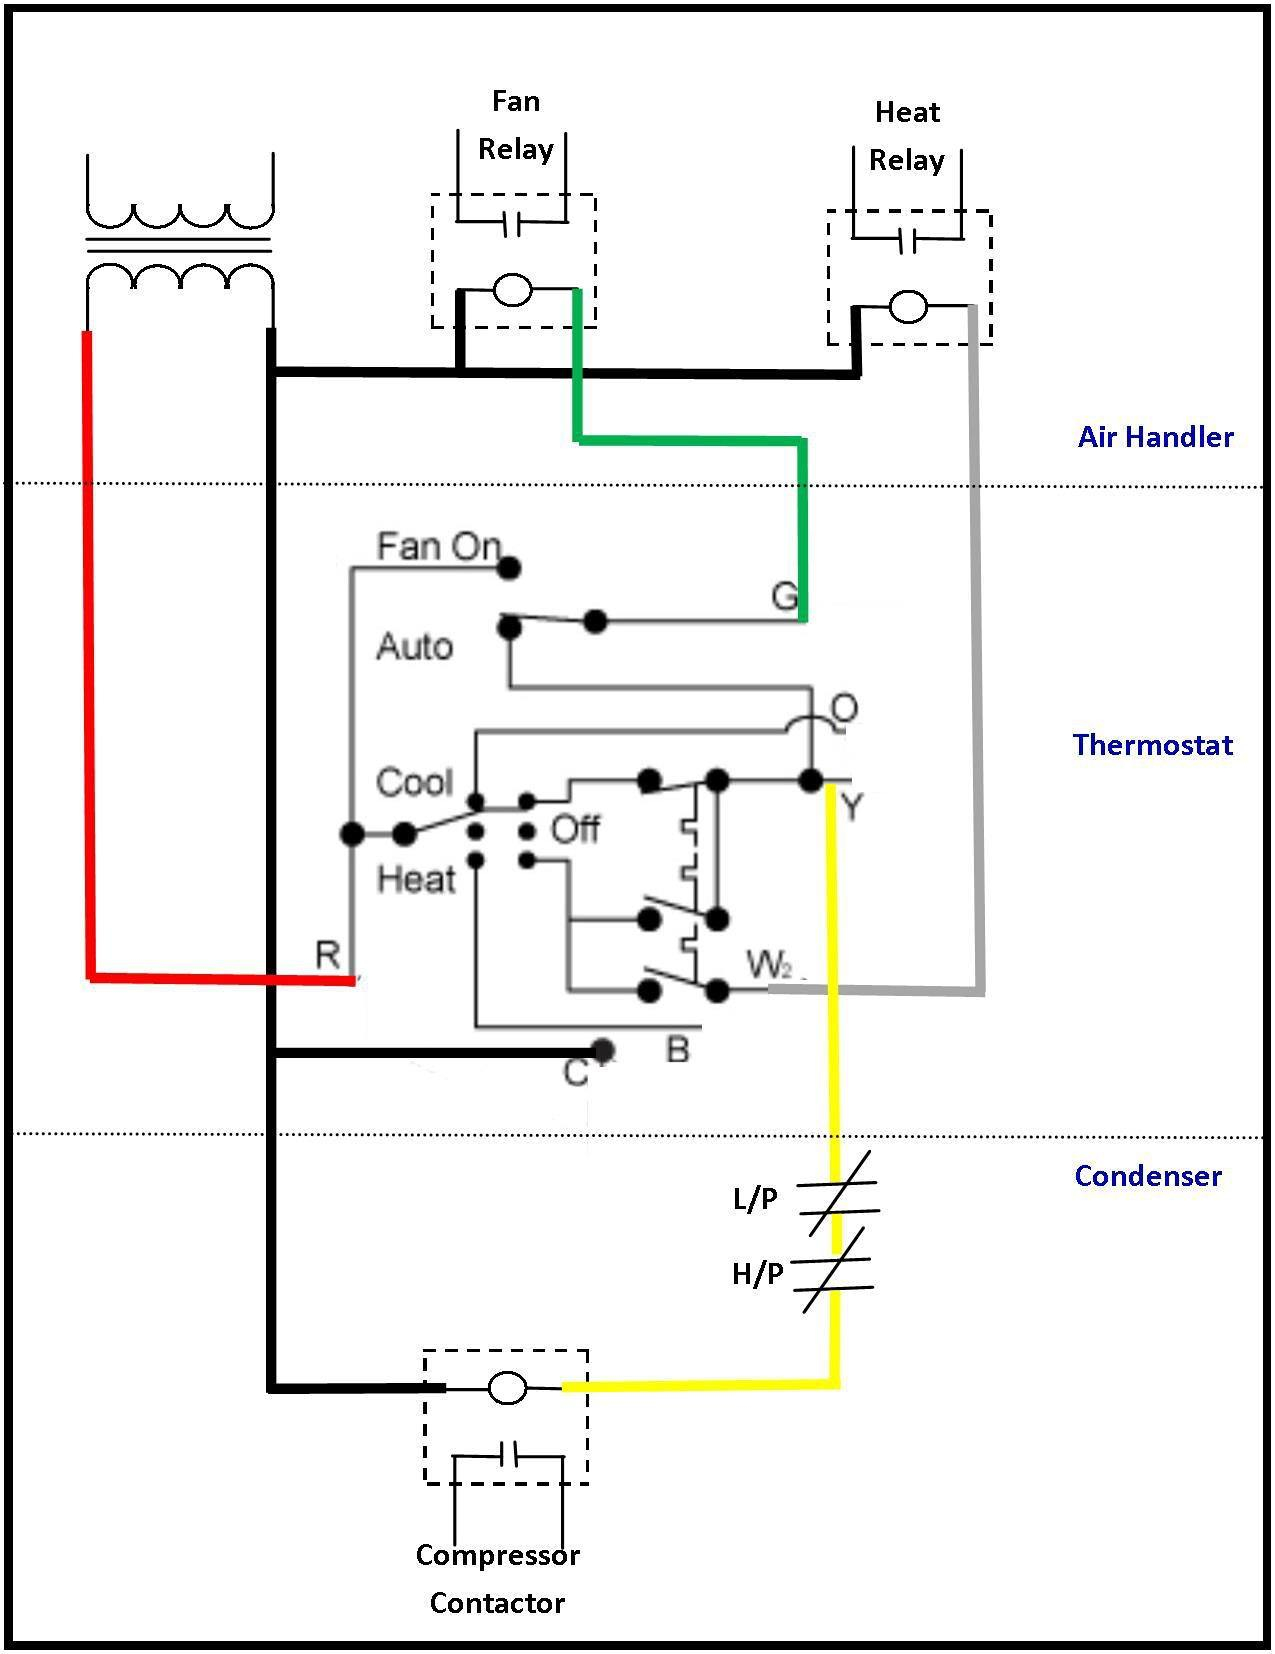 power sentry emergency ballast wiring diagram Download-Power Sentry Ps1400 Wiring Diagram Beautiful Simple Rc Cars Single Channel Transmitters and Super Circuit 2-p